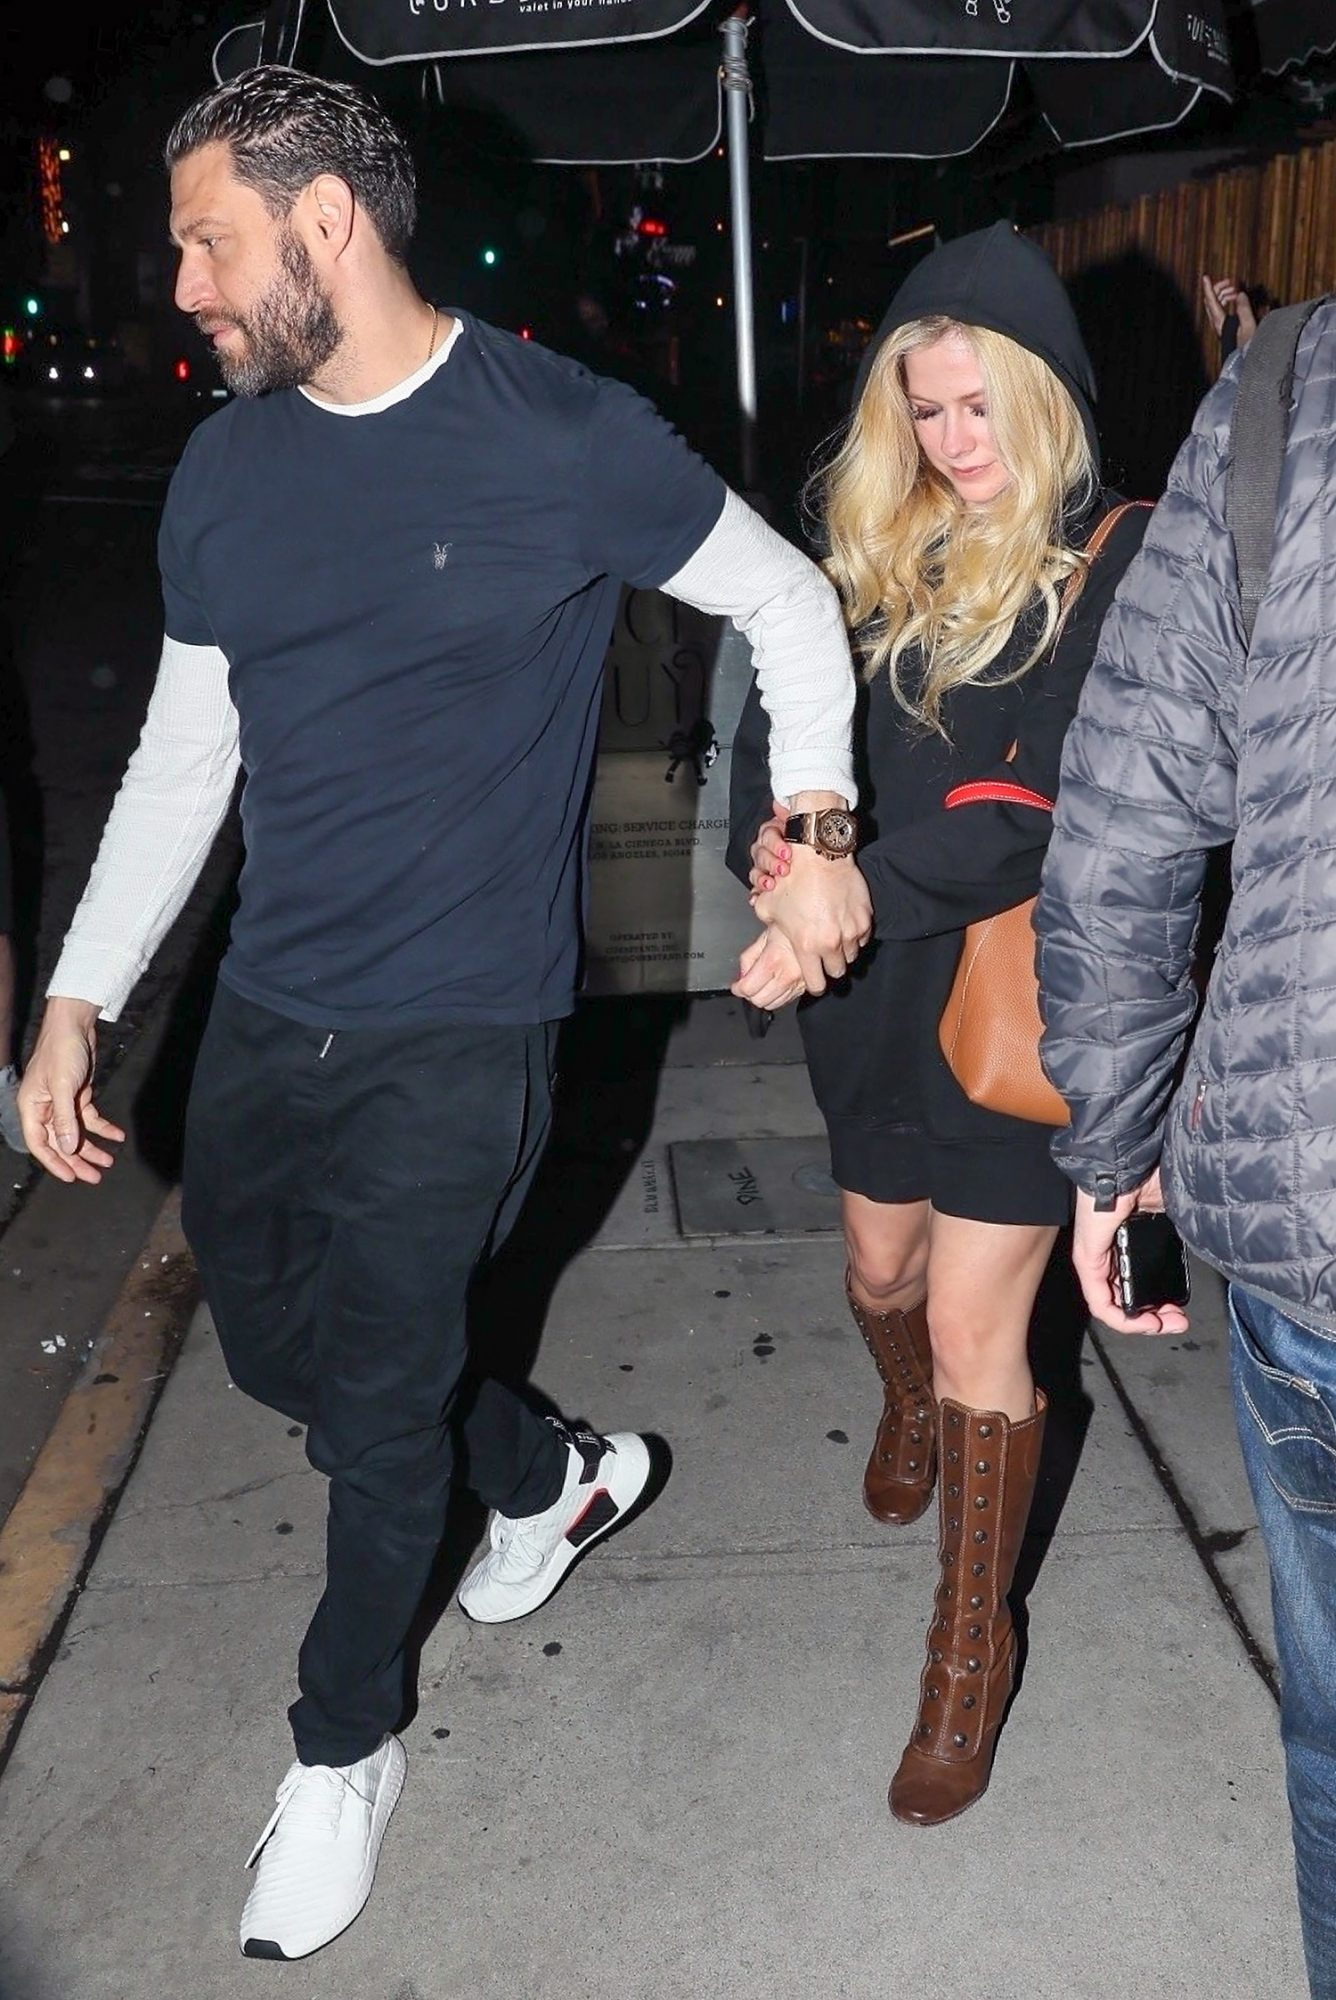 Avril Lavigne and J.R. Rotem hold hands at the Nice Guy